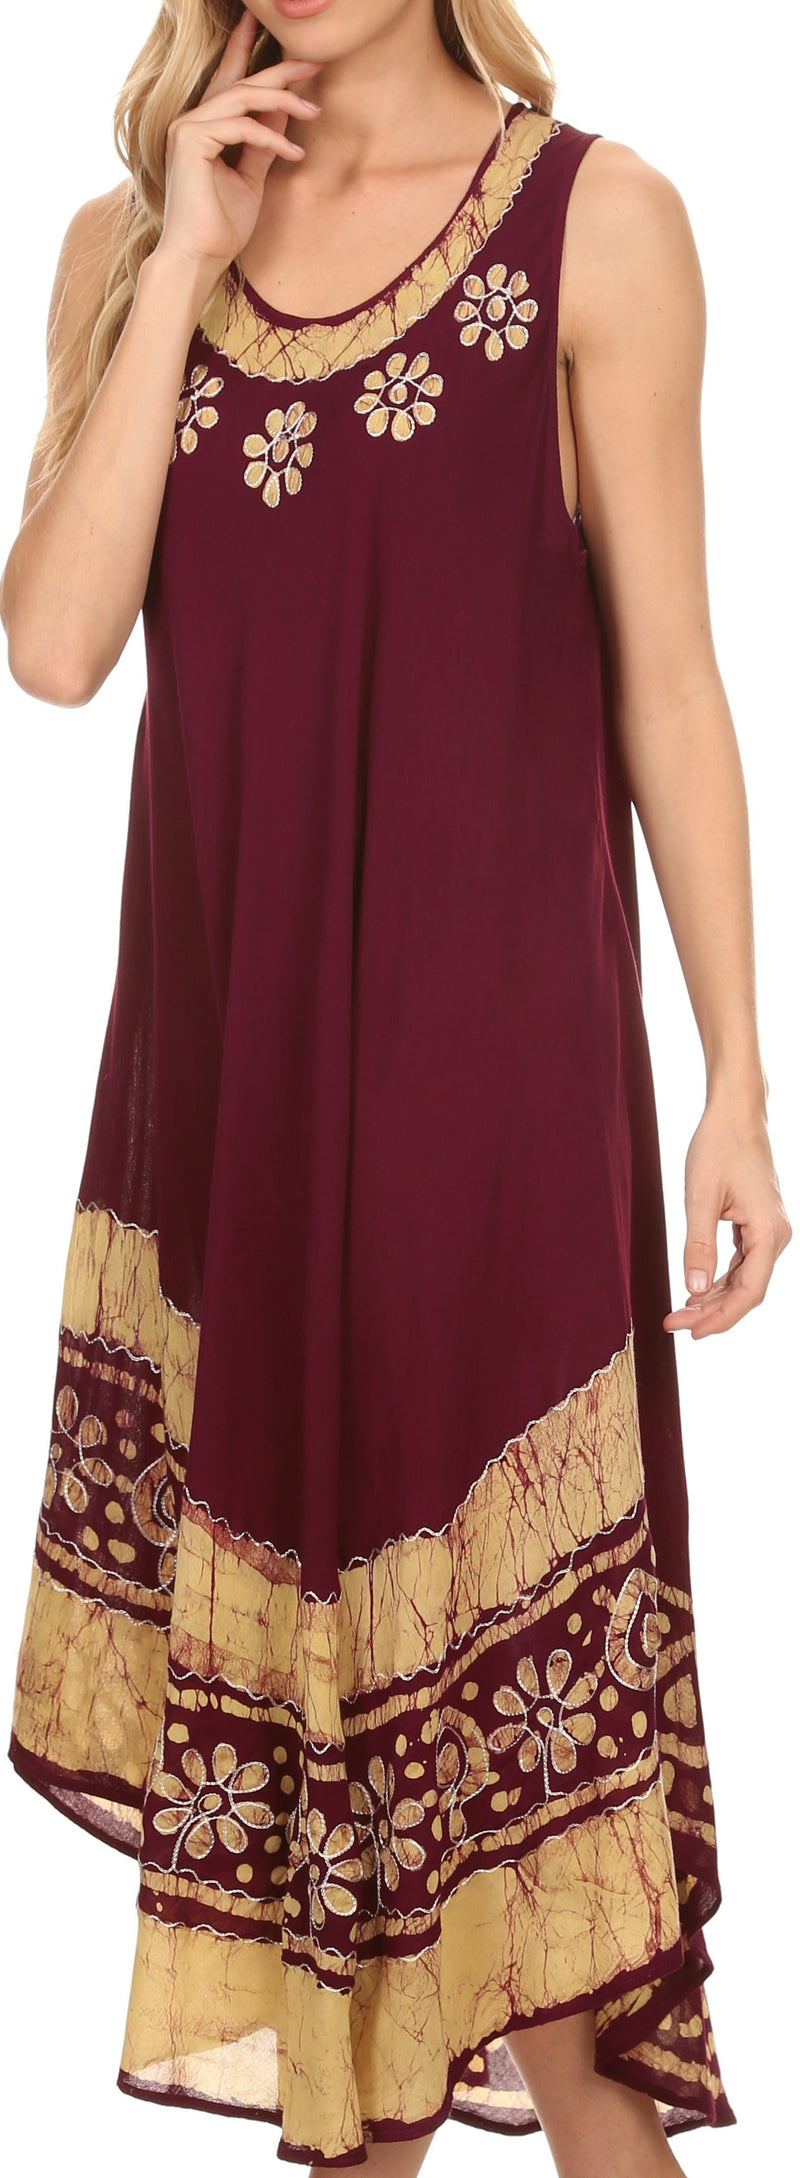 Sakkas Batik Flower Caftan Tank Dress / Cover Up